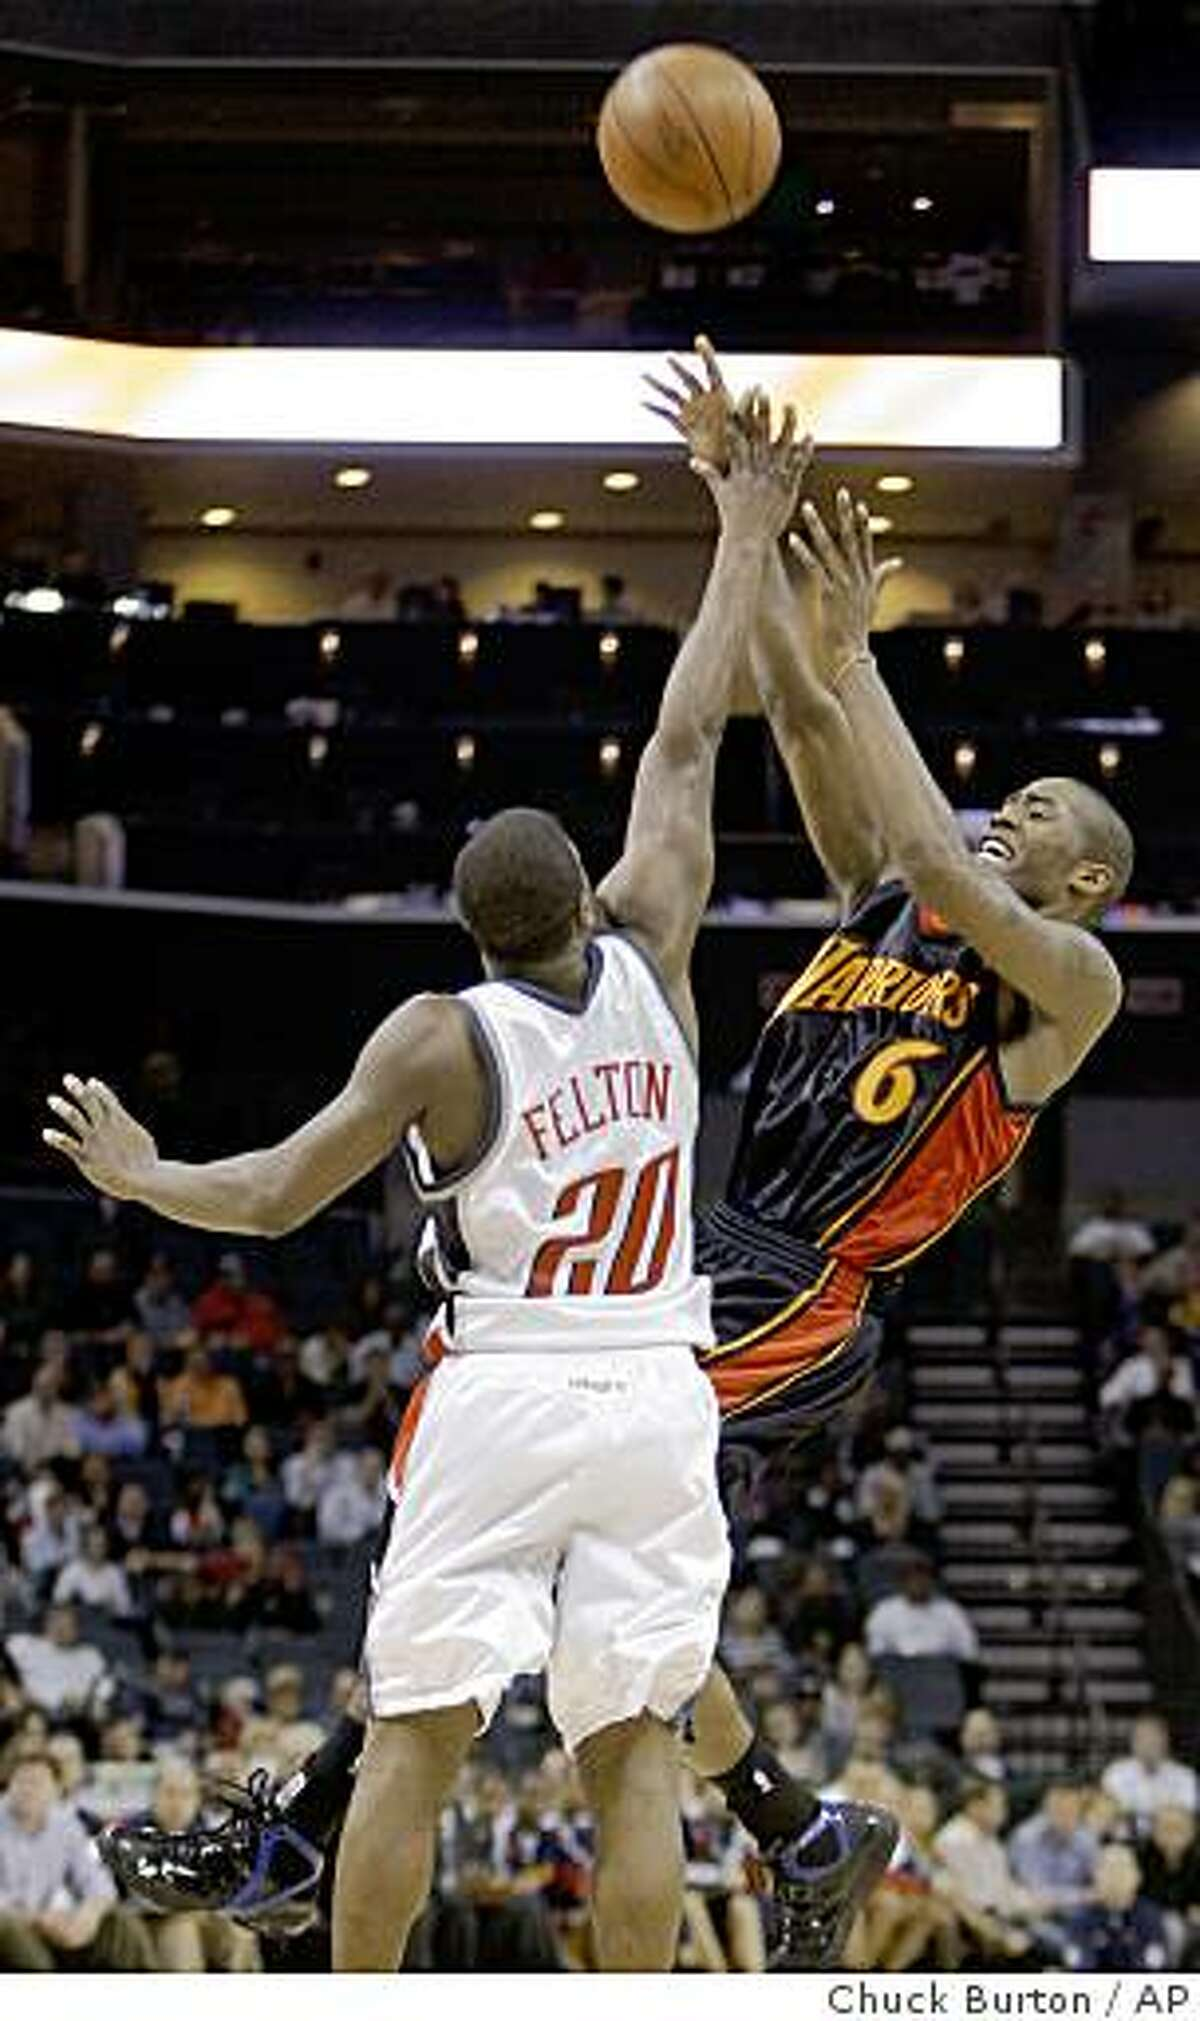 Golden State Warriors' Jamal Crawford (6) is fouled by Charlotte Bobcats guard Raymond Felton (20) during the second half of the Warriors' 110-101 win in an NBA basketball game in Charlotte, N.C., Saturday, Dec. 20, 2008. (AP Photo/Chuck Burton)